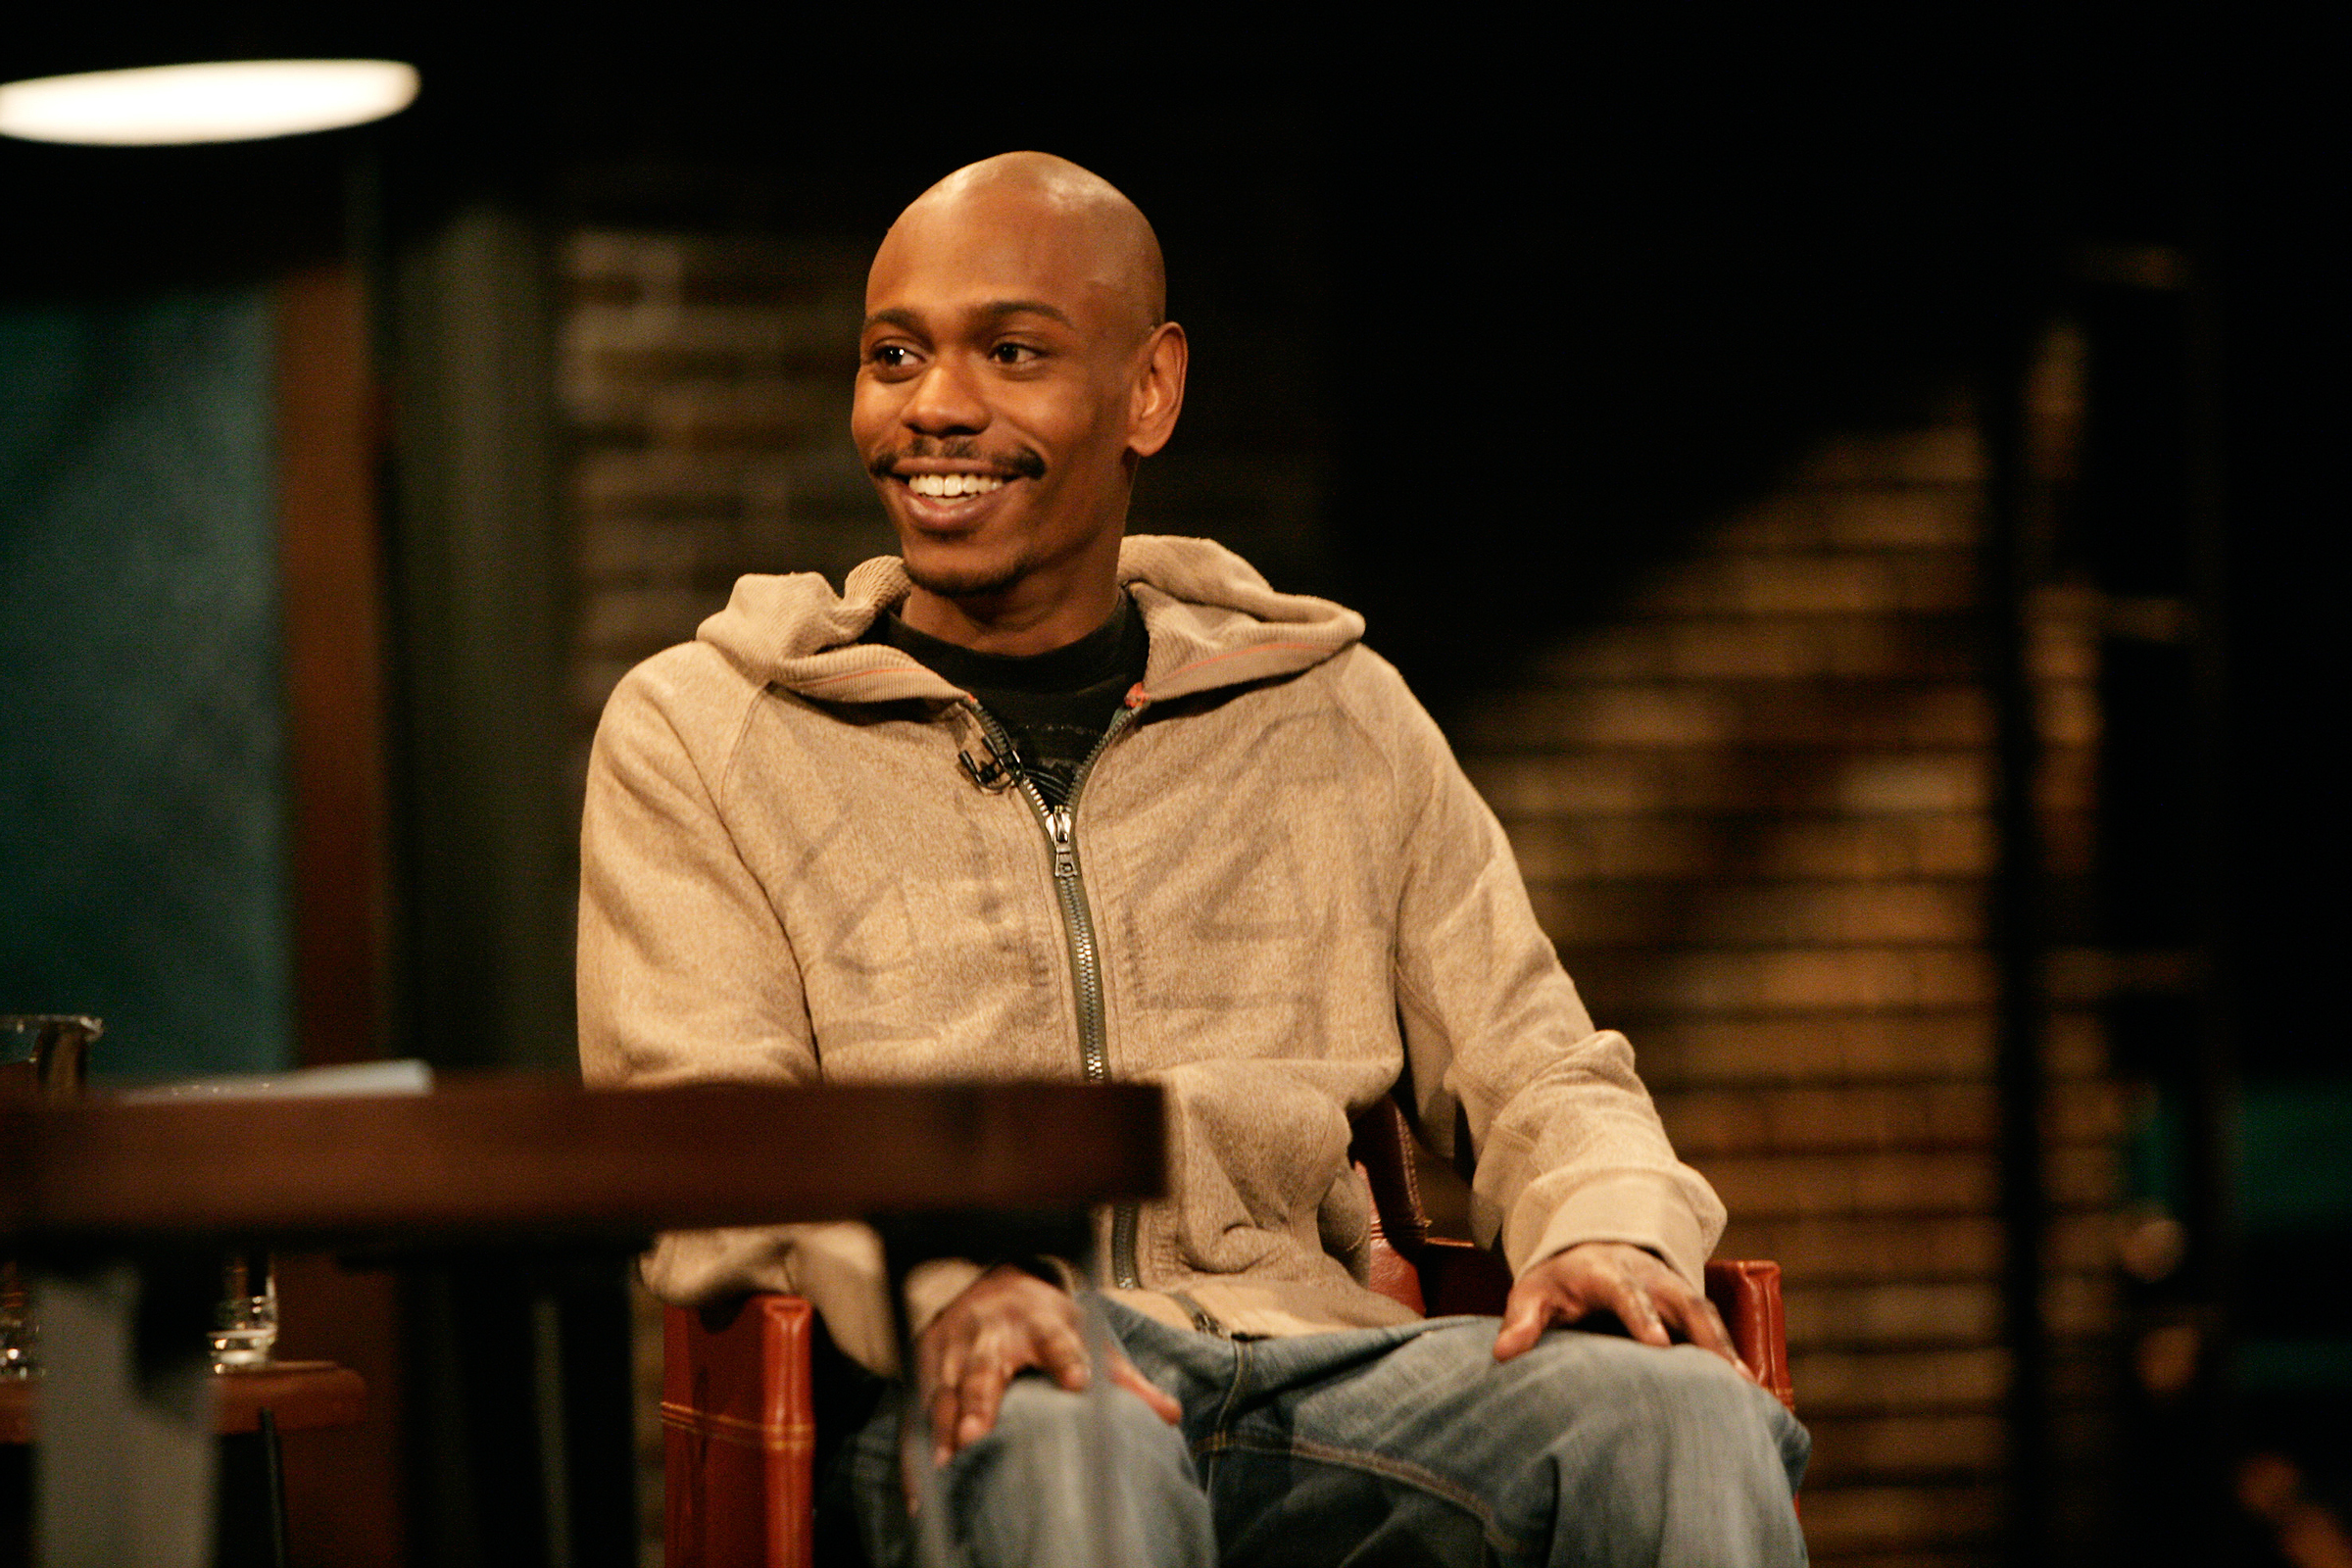 dave chappelle repeat offender rolling stone https www rollingstone com culture culture features dave chappelle comedy show interview 887288